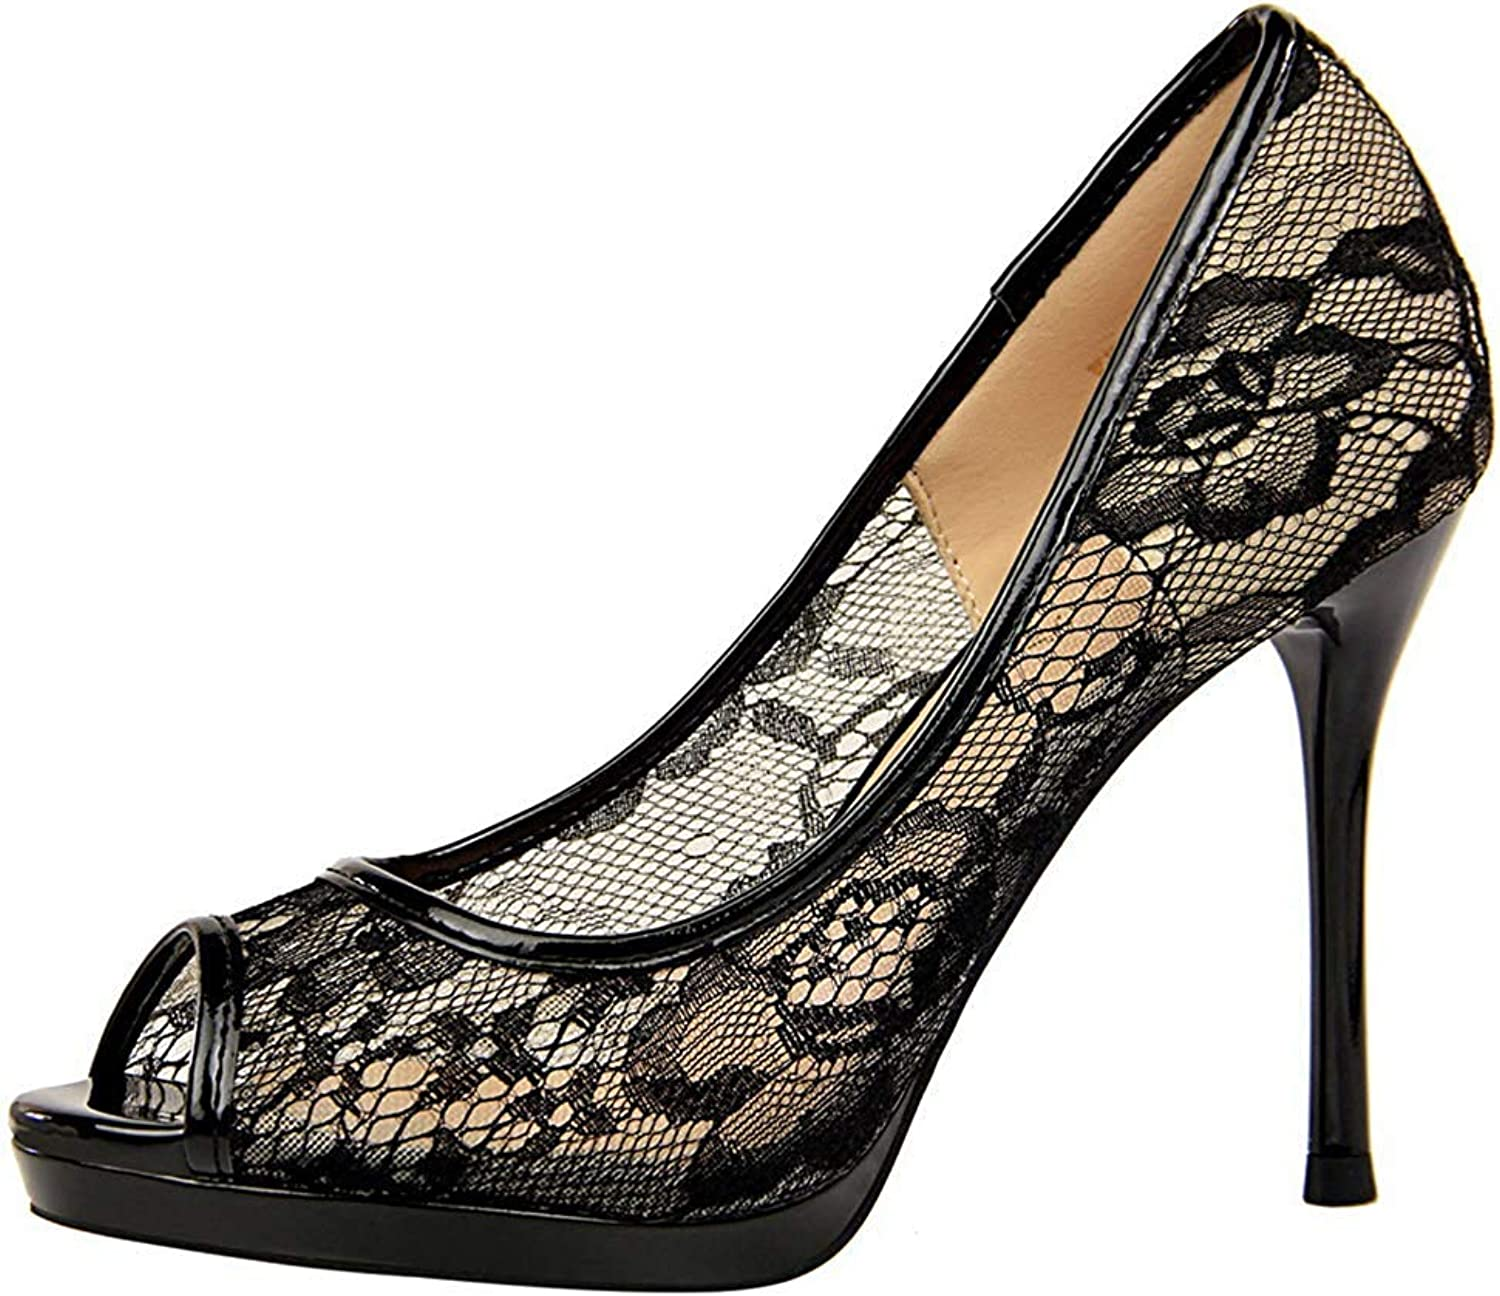 Women's Peep Toe Pumps with Platform - Sexy Cutout Lace Mesh Slip On - Stiletto High Heels Wedding shoes